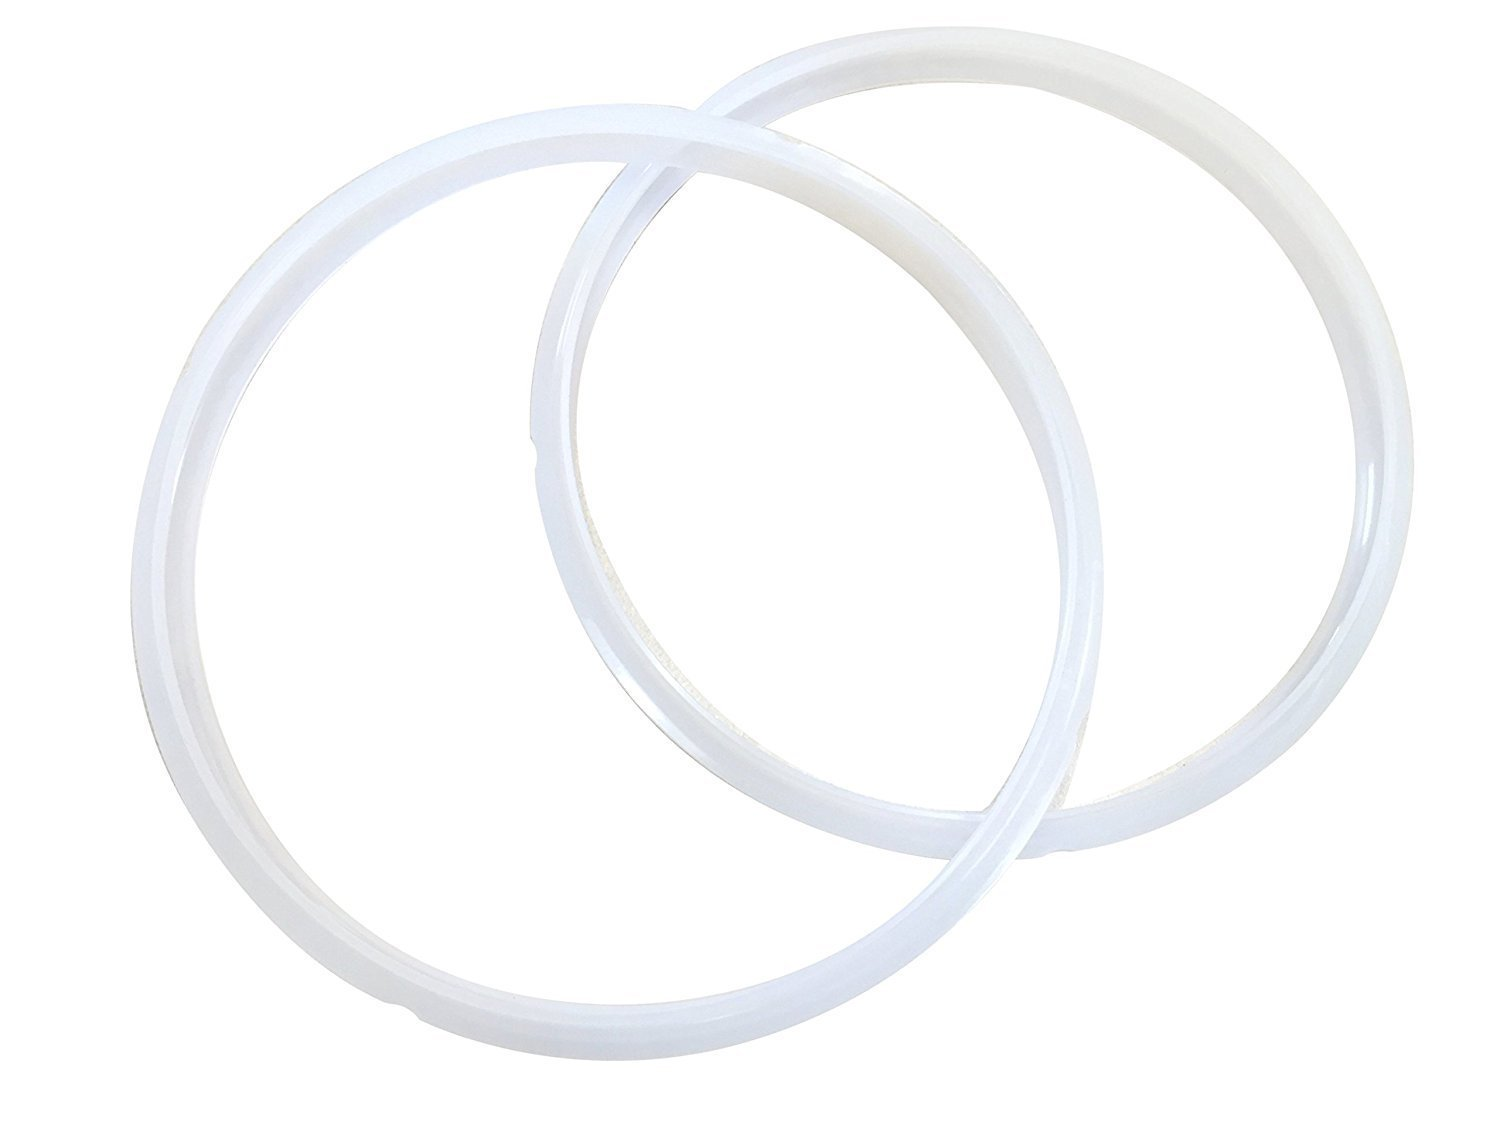 TWIN PACK: Two Replacement Sealing Rings Compatible with Cuisinart Pressure Cooker Part CPC-SR600